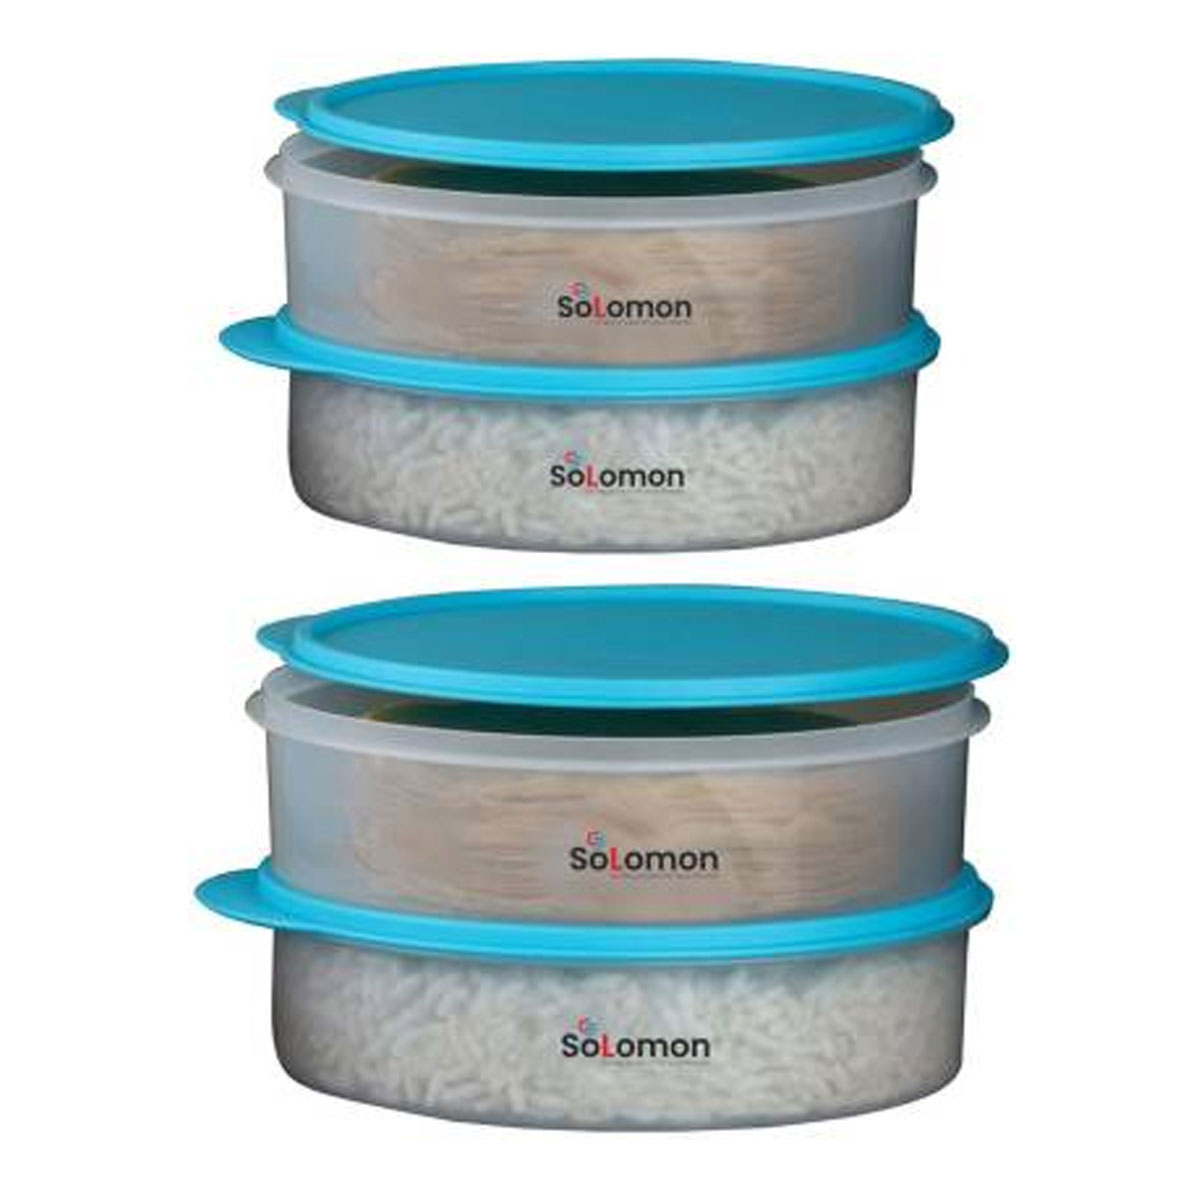 Solomon Premium Quality Multi Purpose Storage Round Container Best for khakhra chapati 2000 ML  PACK OF 4,SKY BLUE